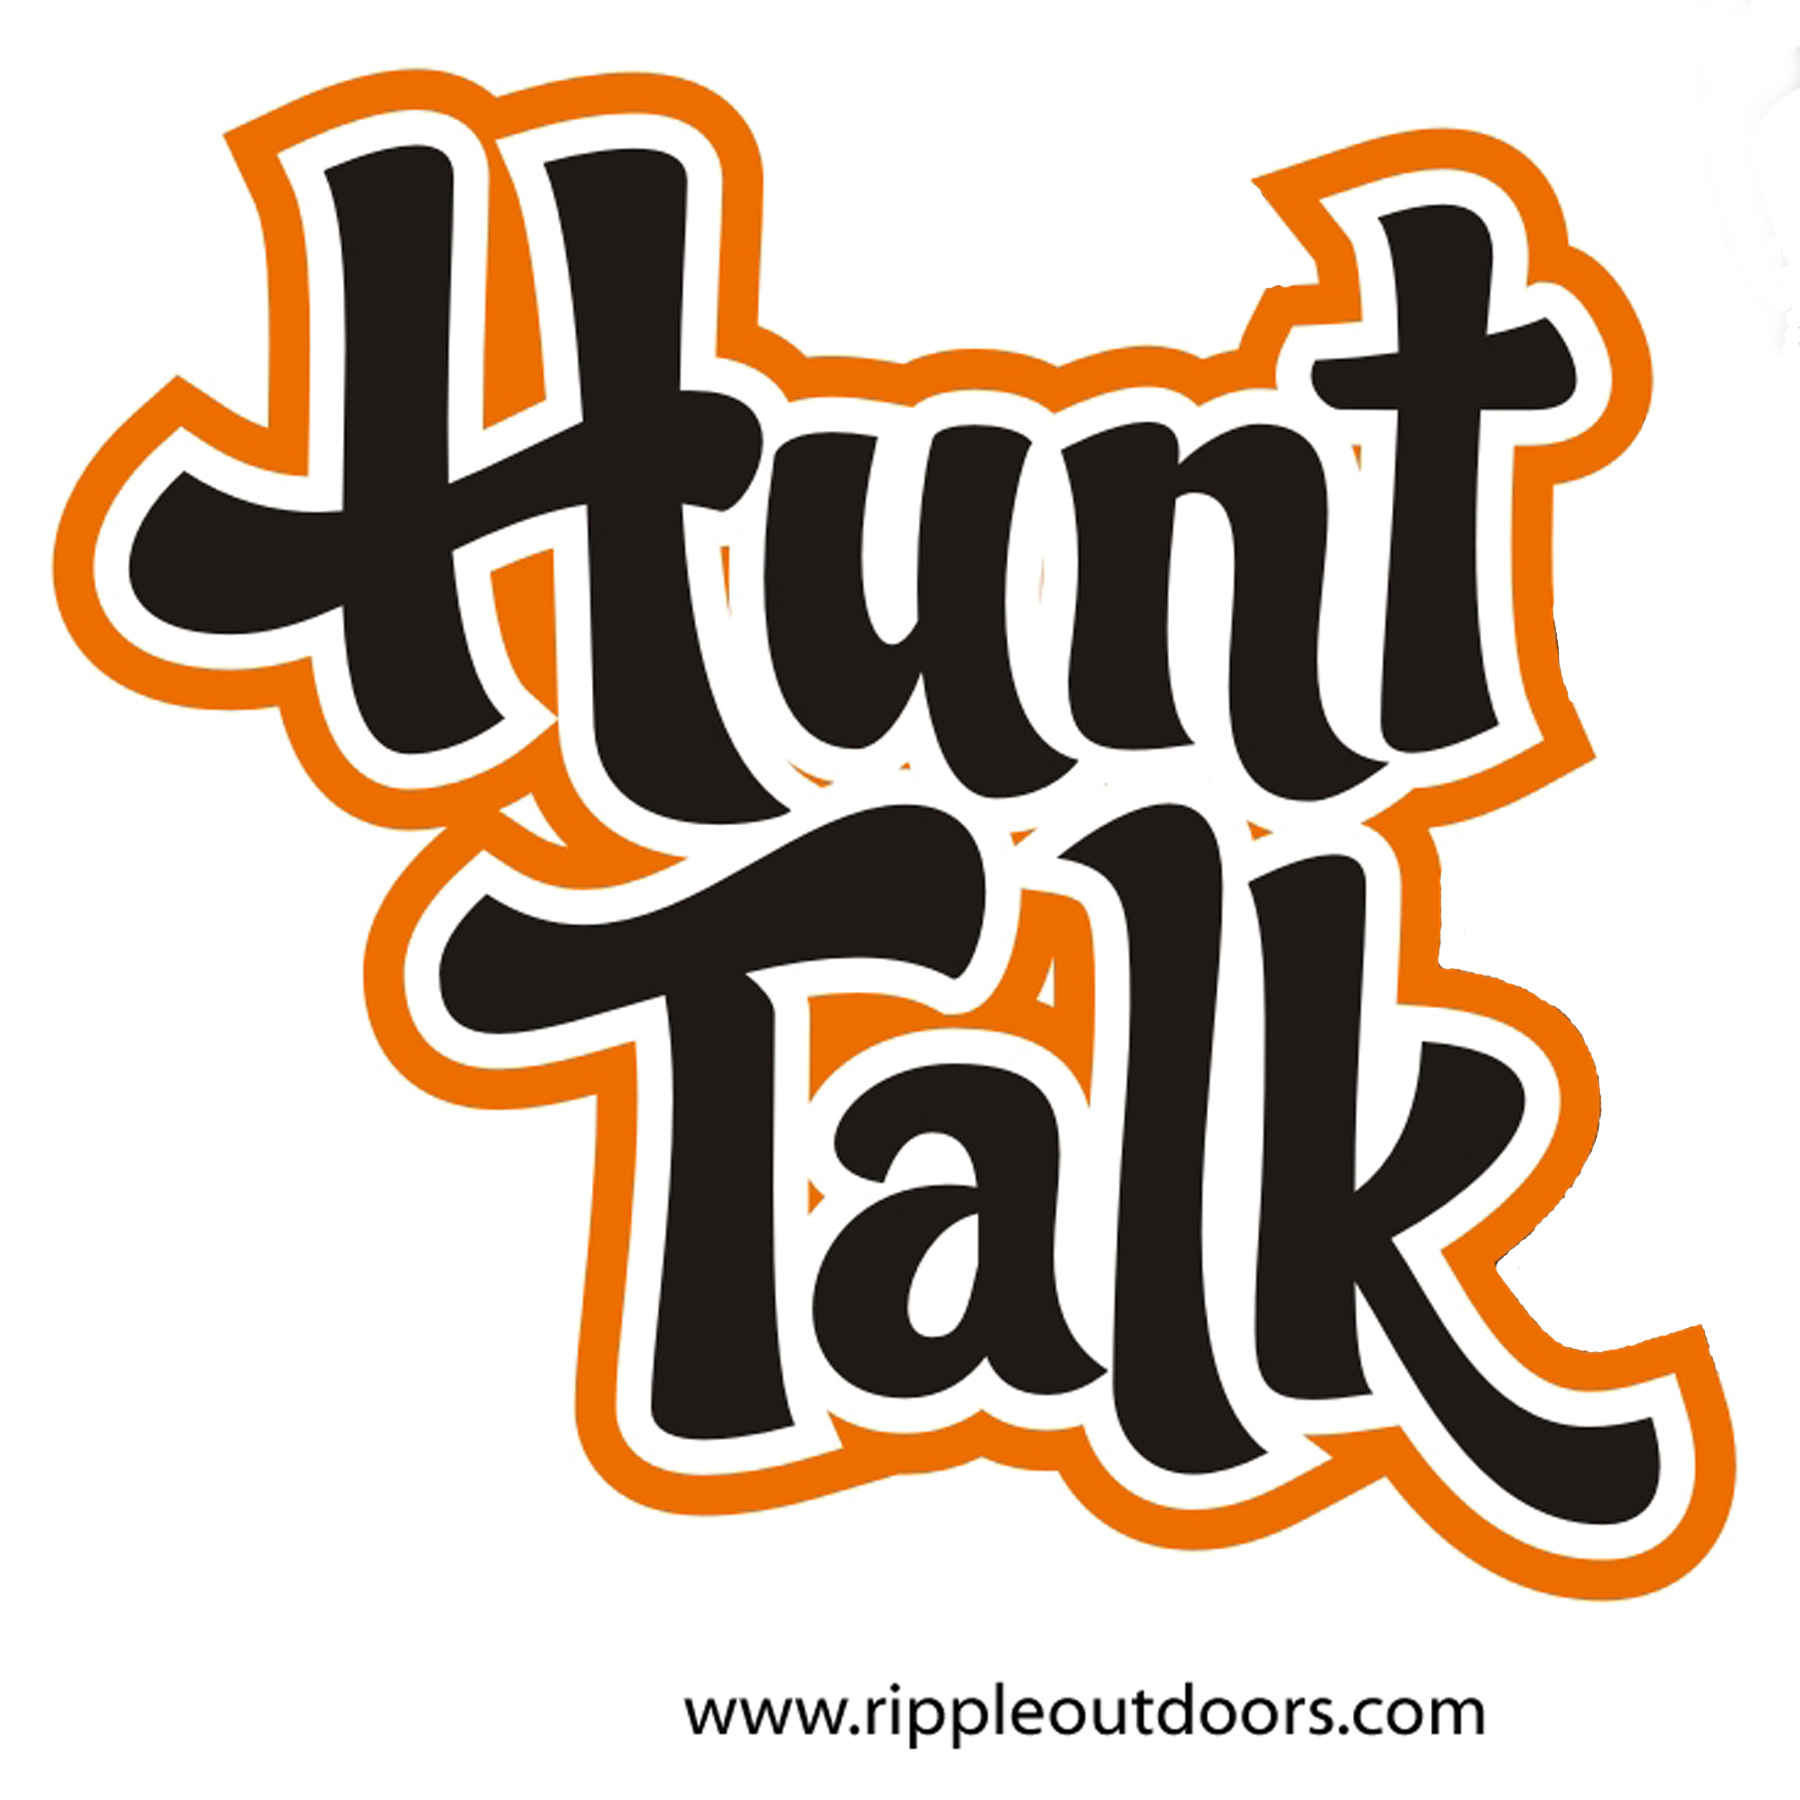 Hunt Talk Show guest experts discuss issues and concerns that affect hunters and anglers